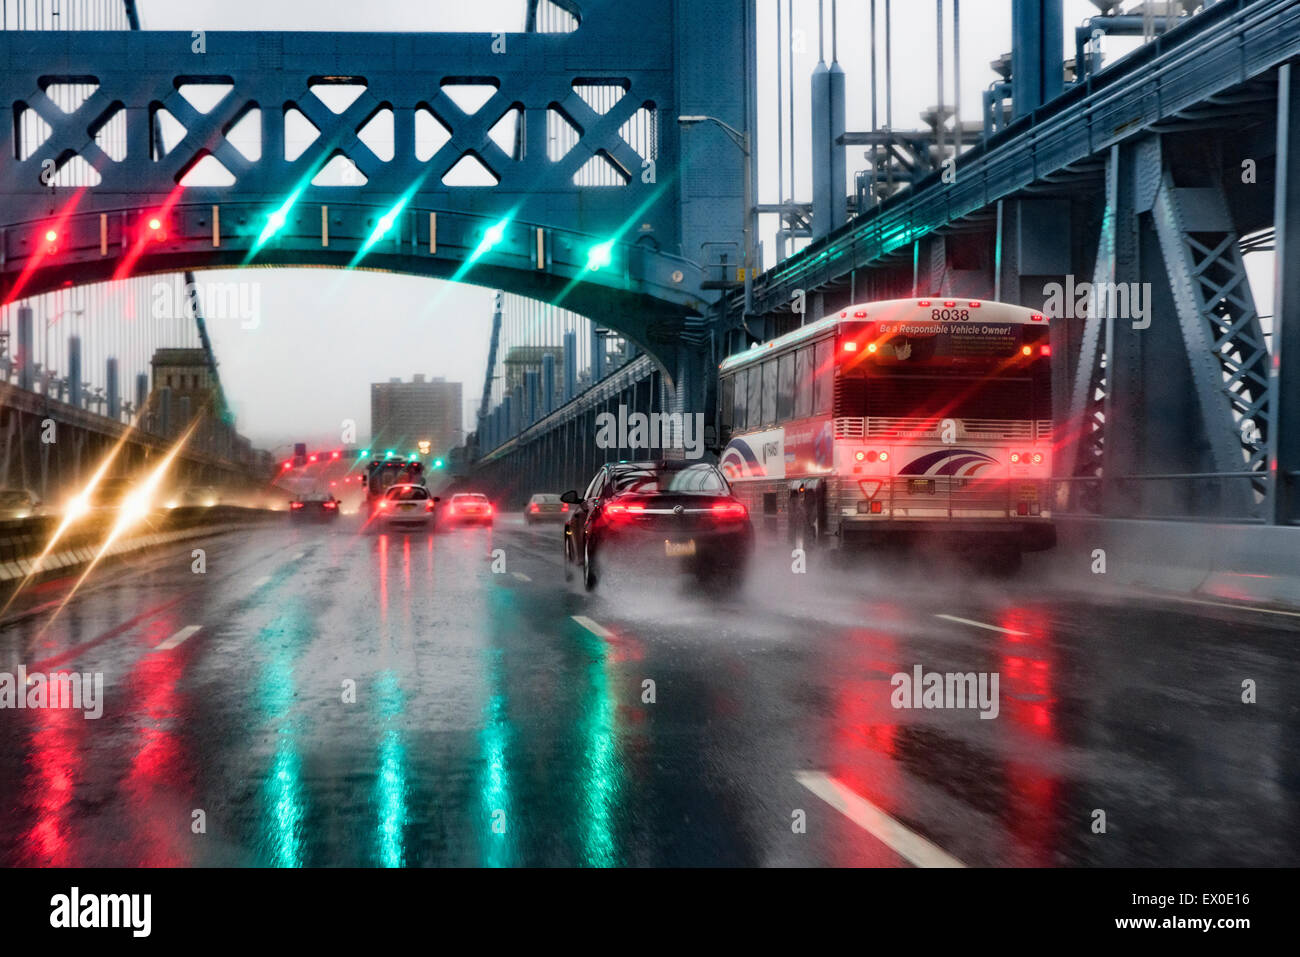 Hazardous driving conditions on a busy bridge during a heavy rain storm. - Stock Image